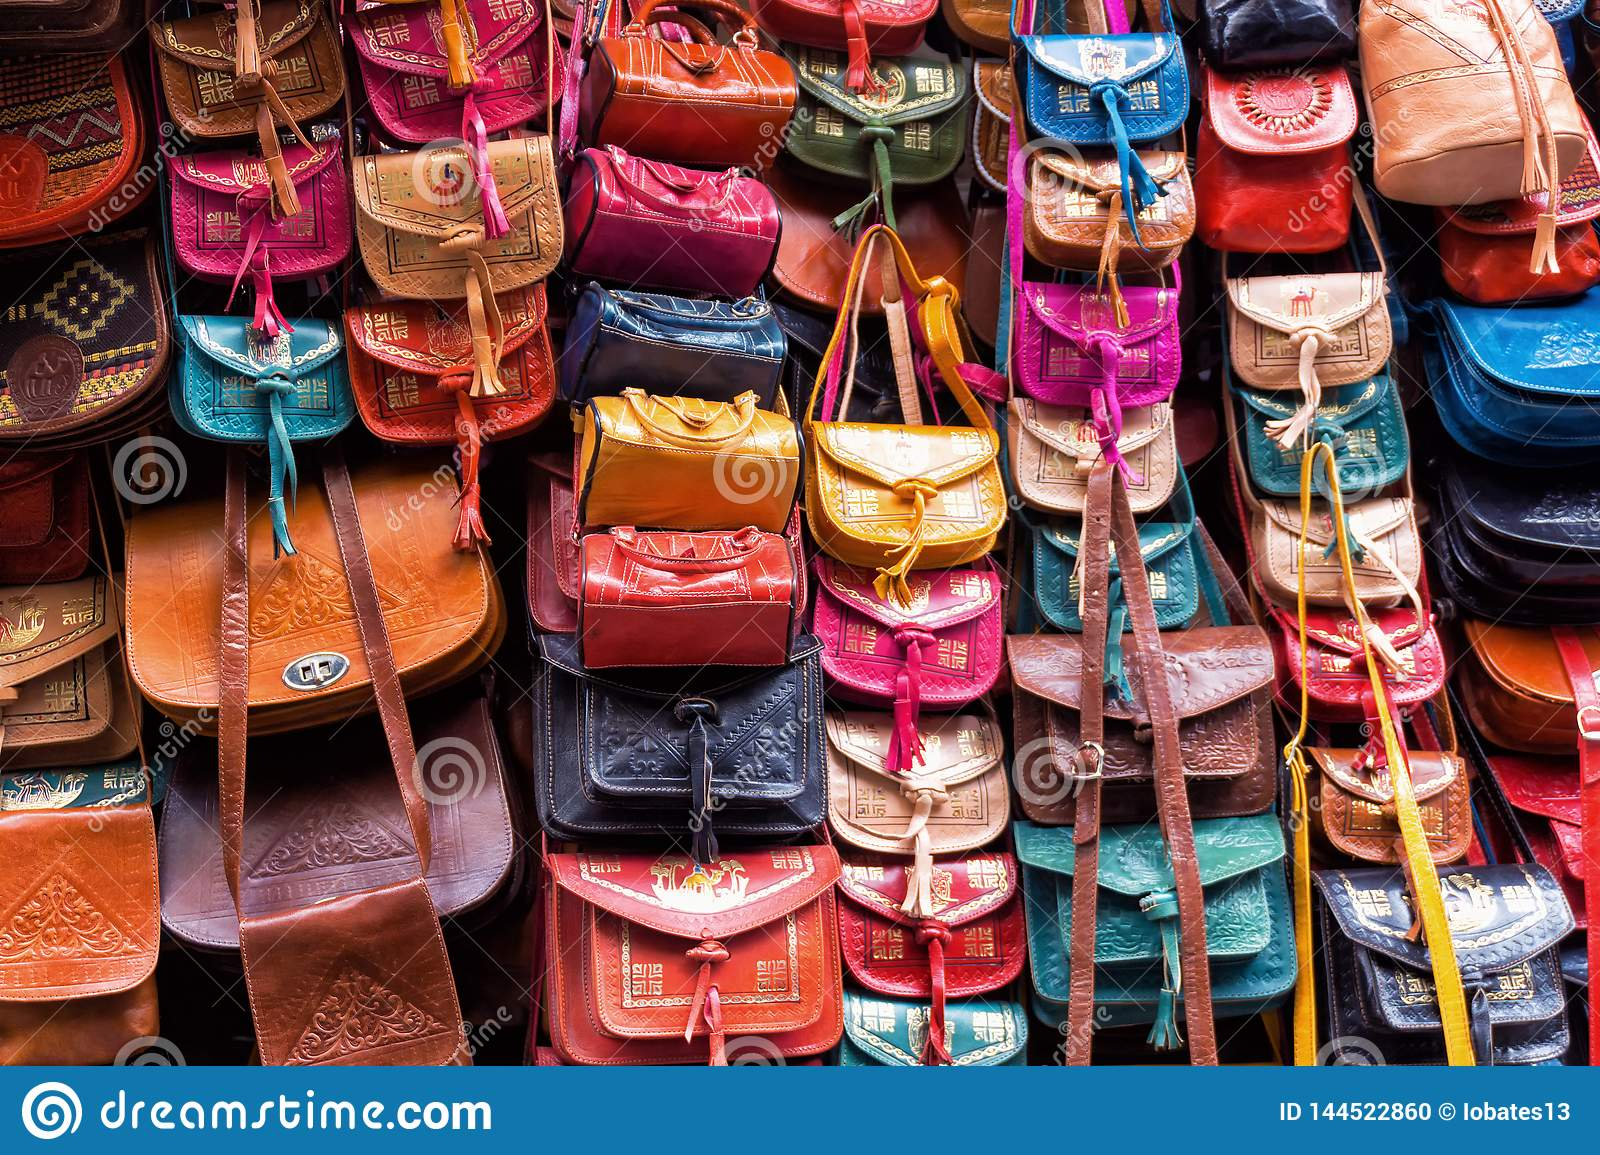 Leather Bags Store in Tunis, Tunisia